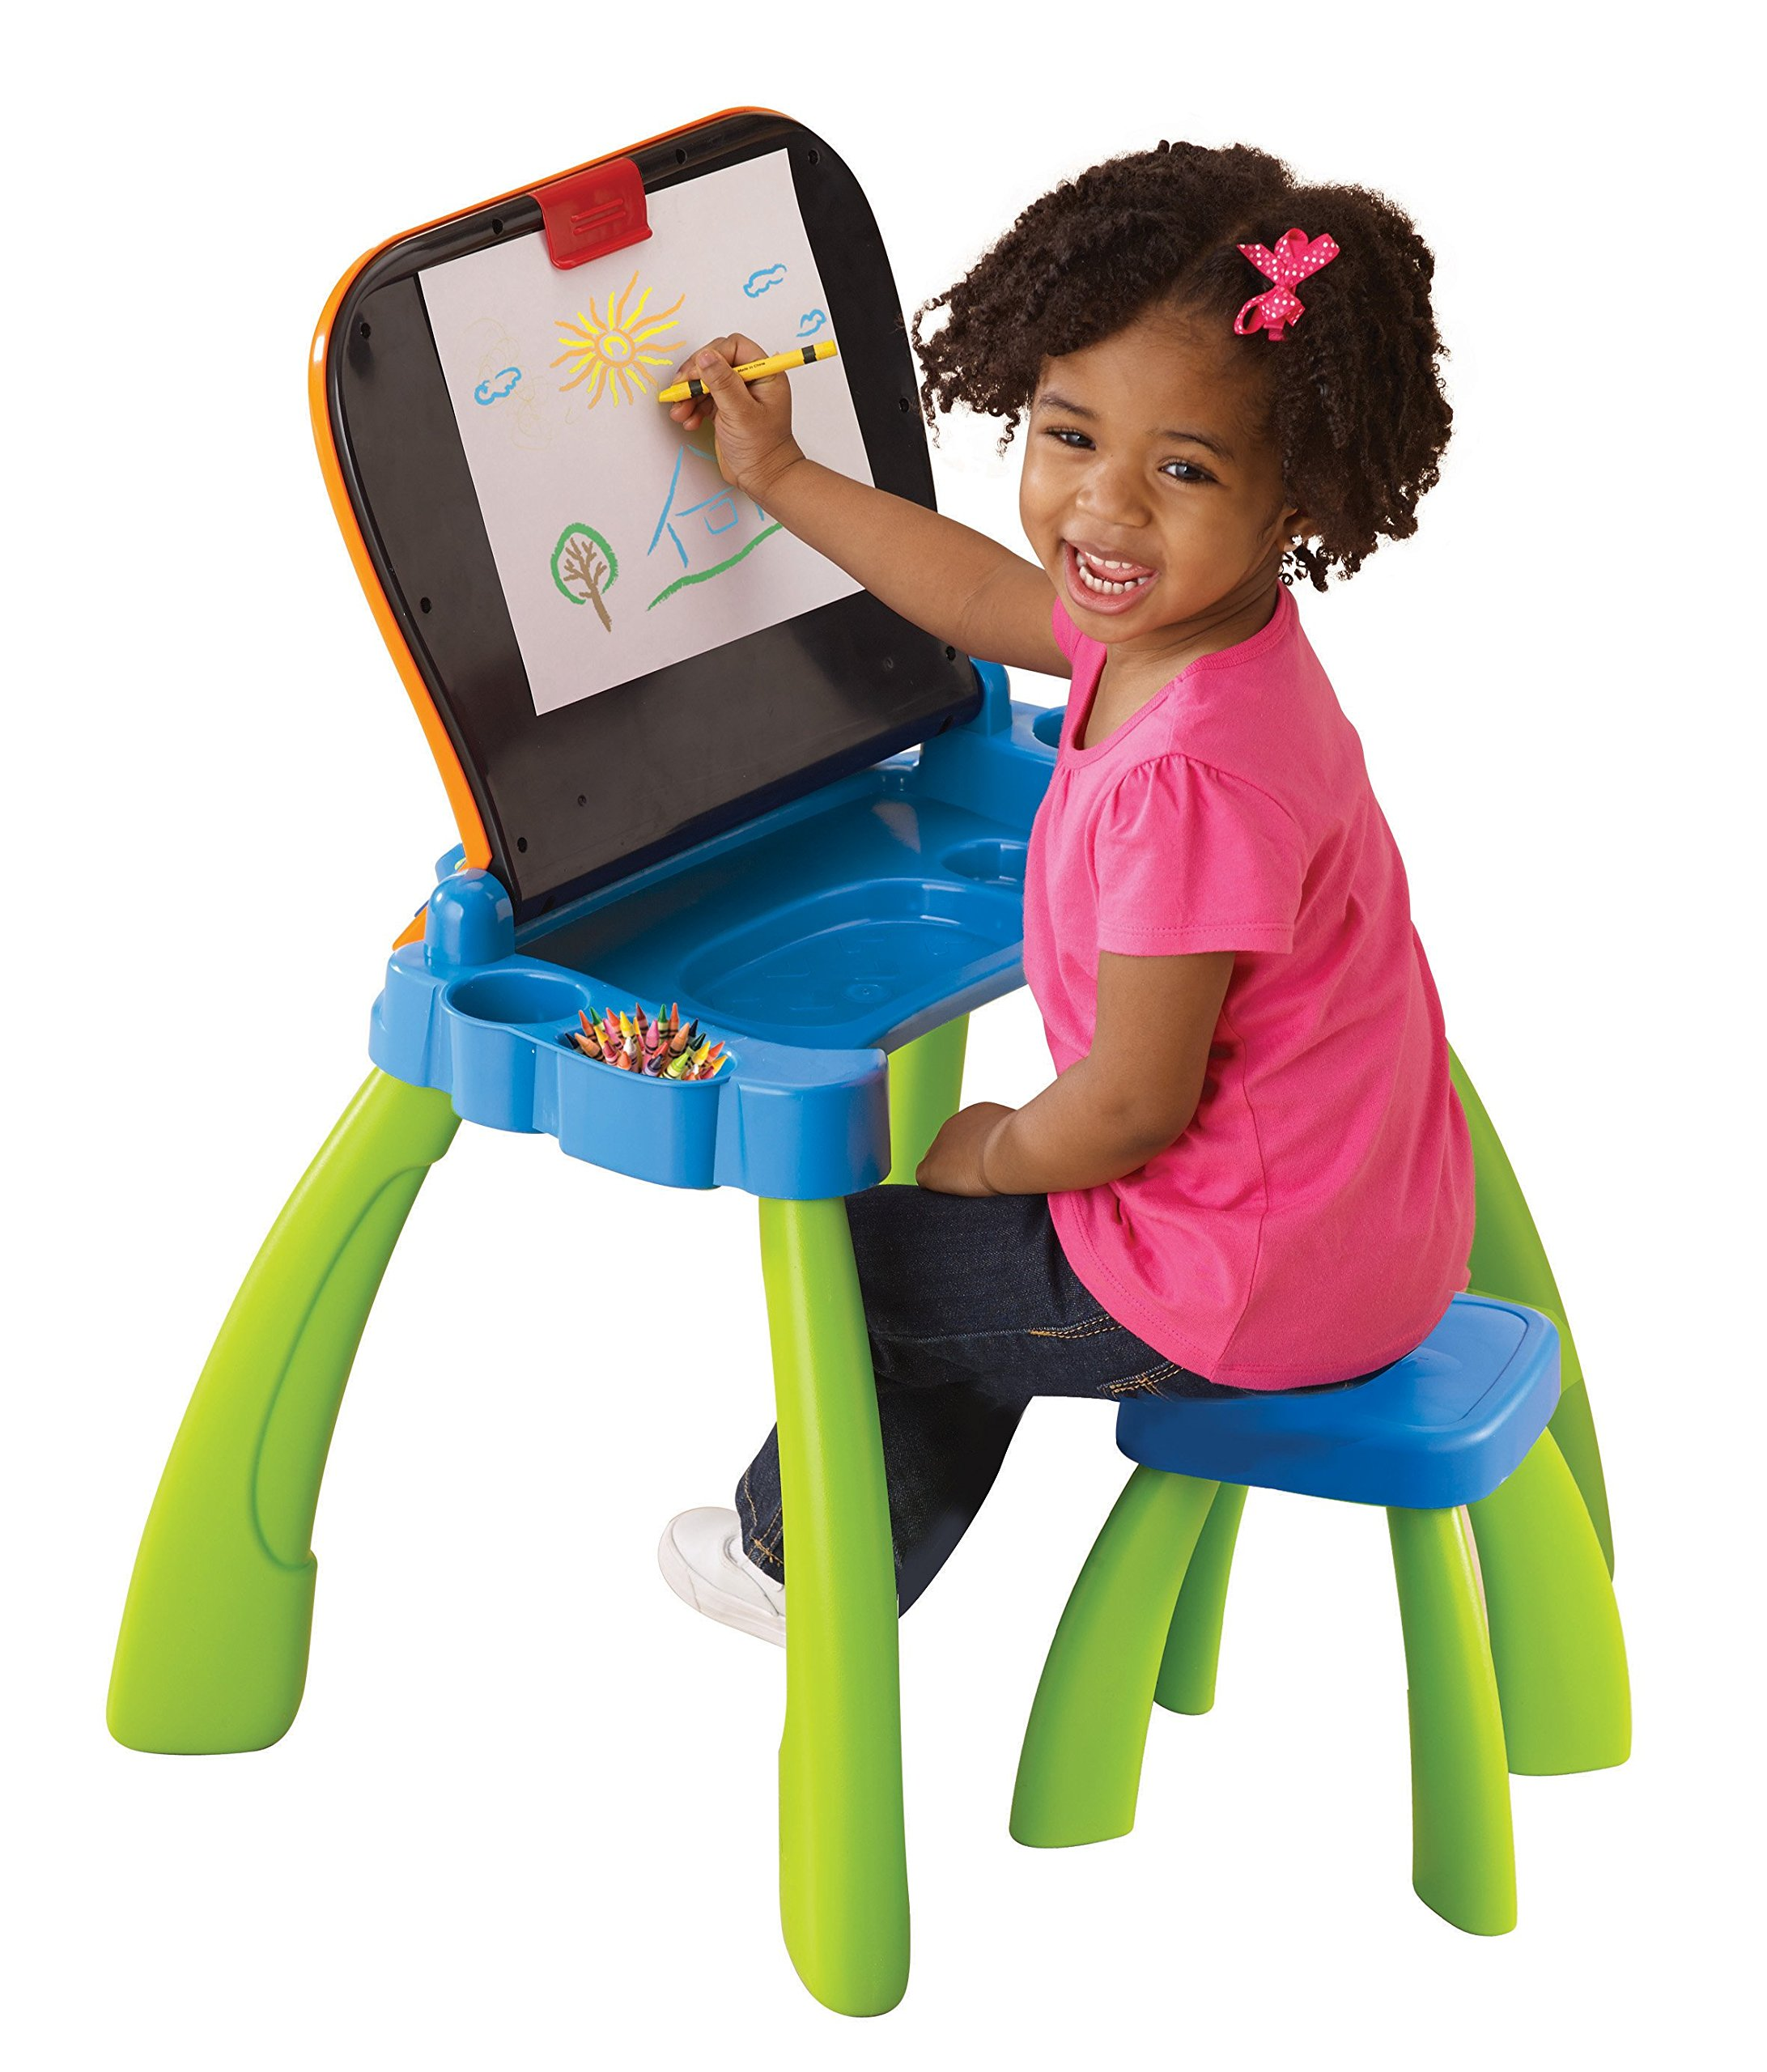 VTech Touch and Learn Activity Desk (Frustration Free Packaging), Green by VTech (Image #4)